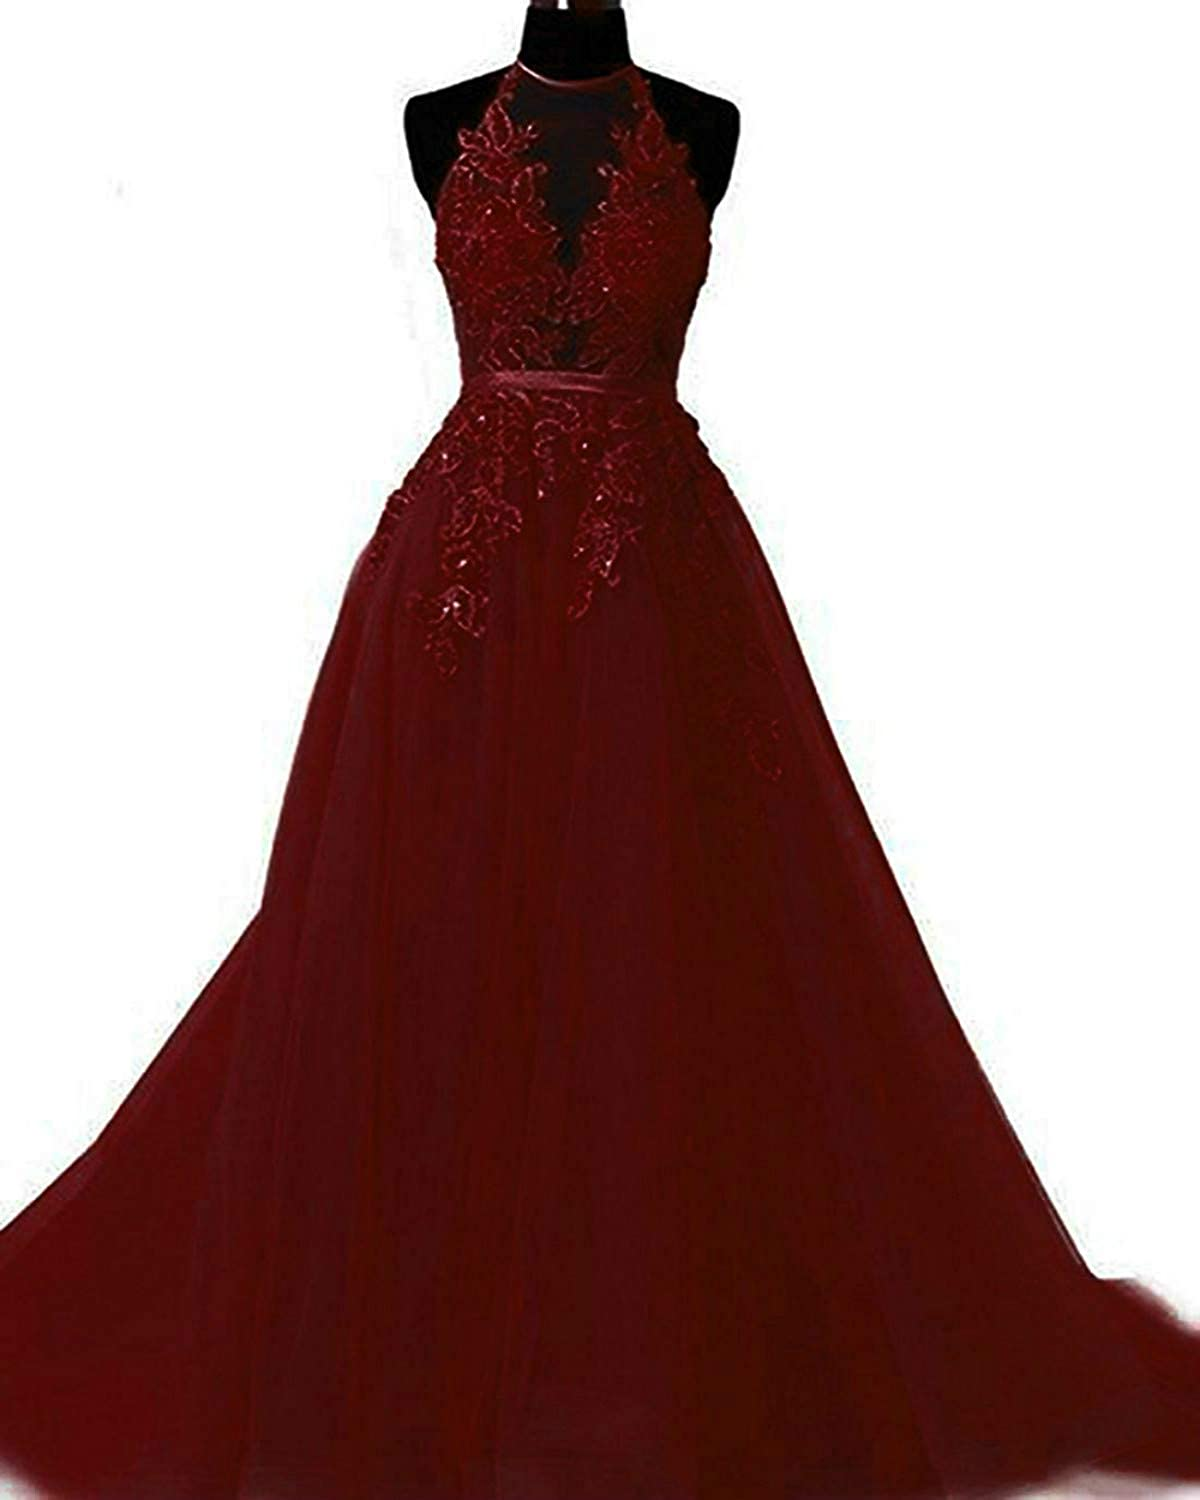 Burgundy Liaoye Women's Halter Lace Prom Dresses Long Formal Party Gown 2019 Backless Evening Dress for Weddings